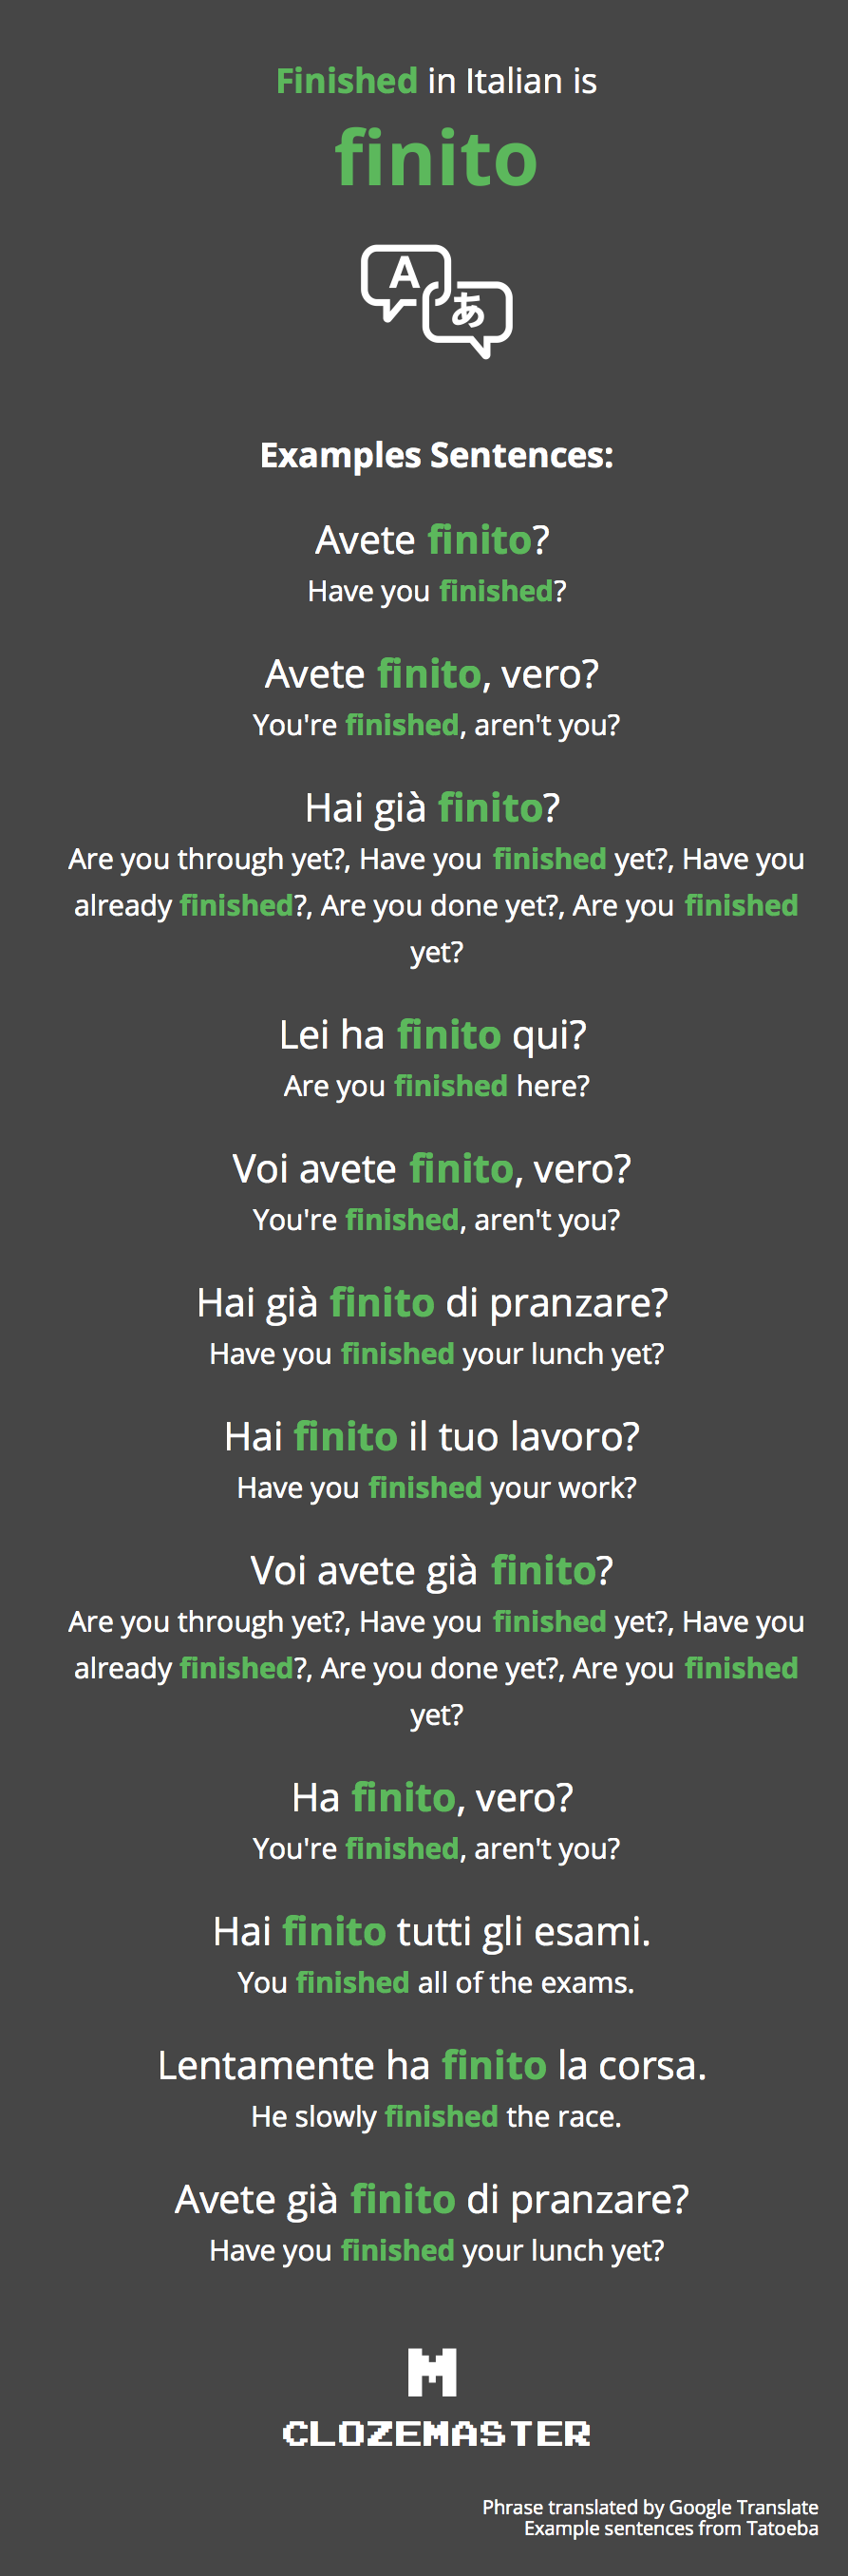 How To Say Finished In Italian Clozemaster